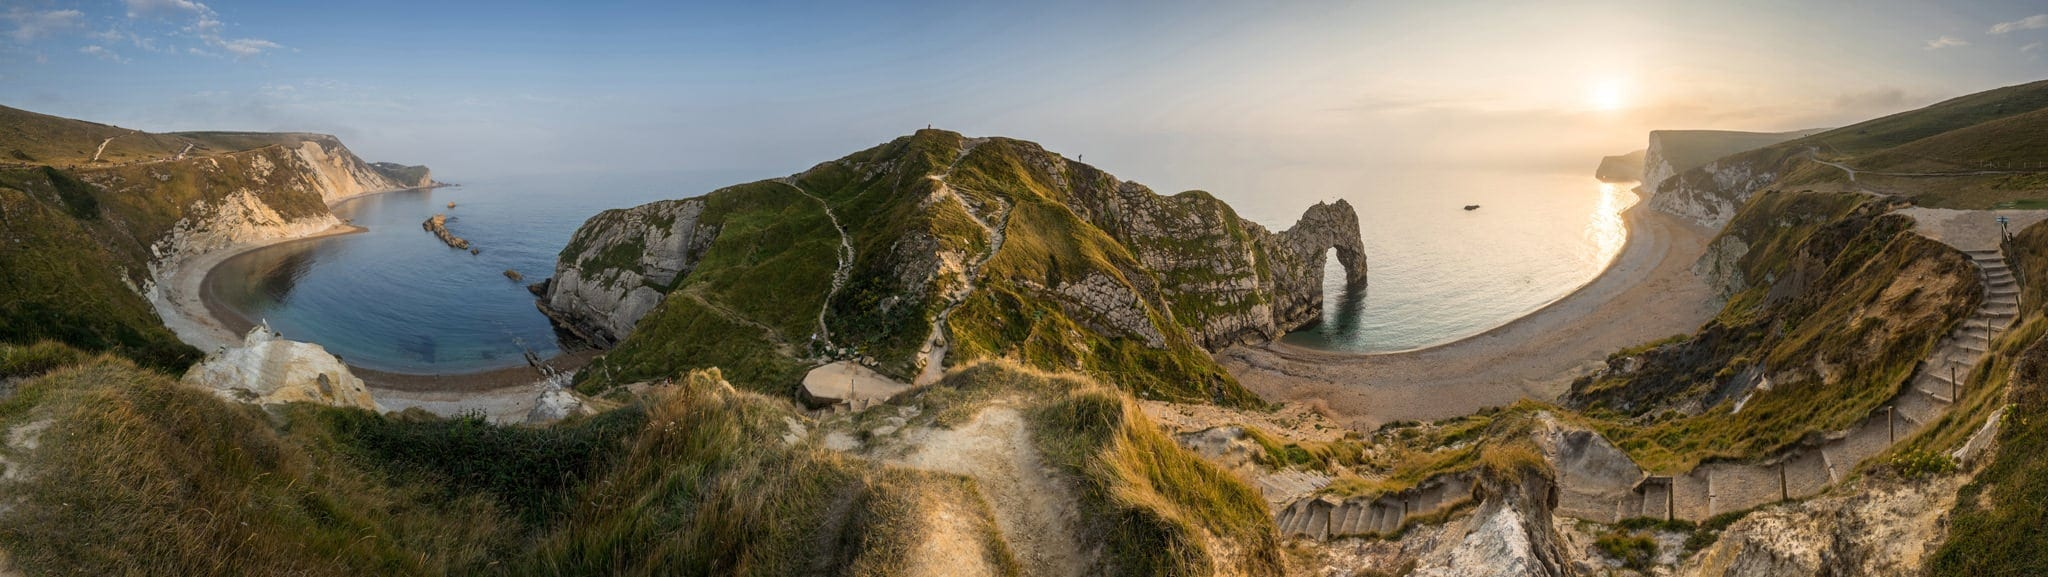 Durdle Door Panoramic - Dorset Photography